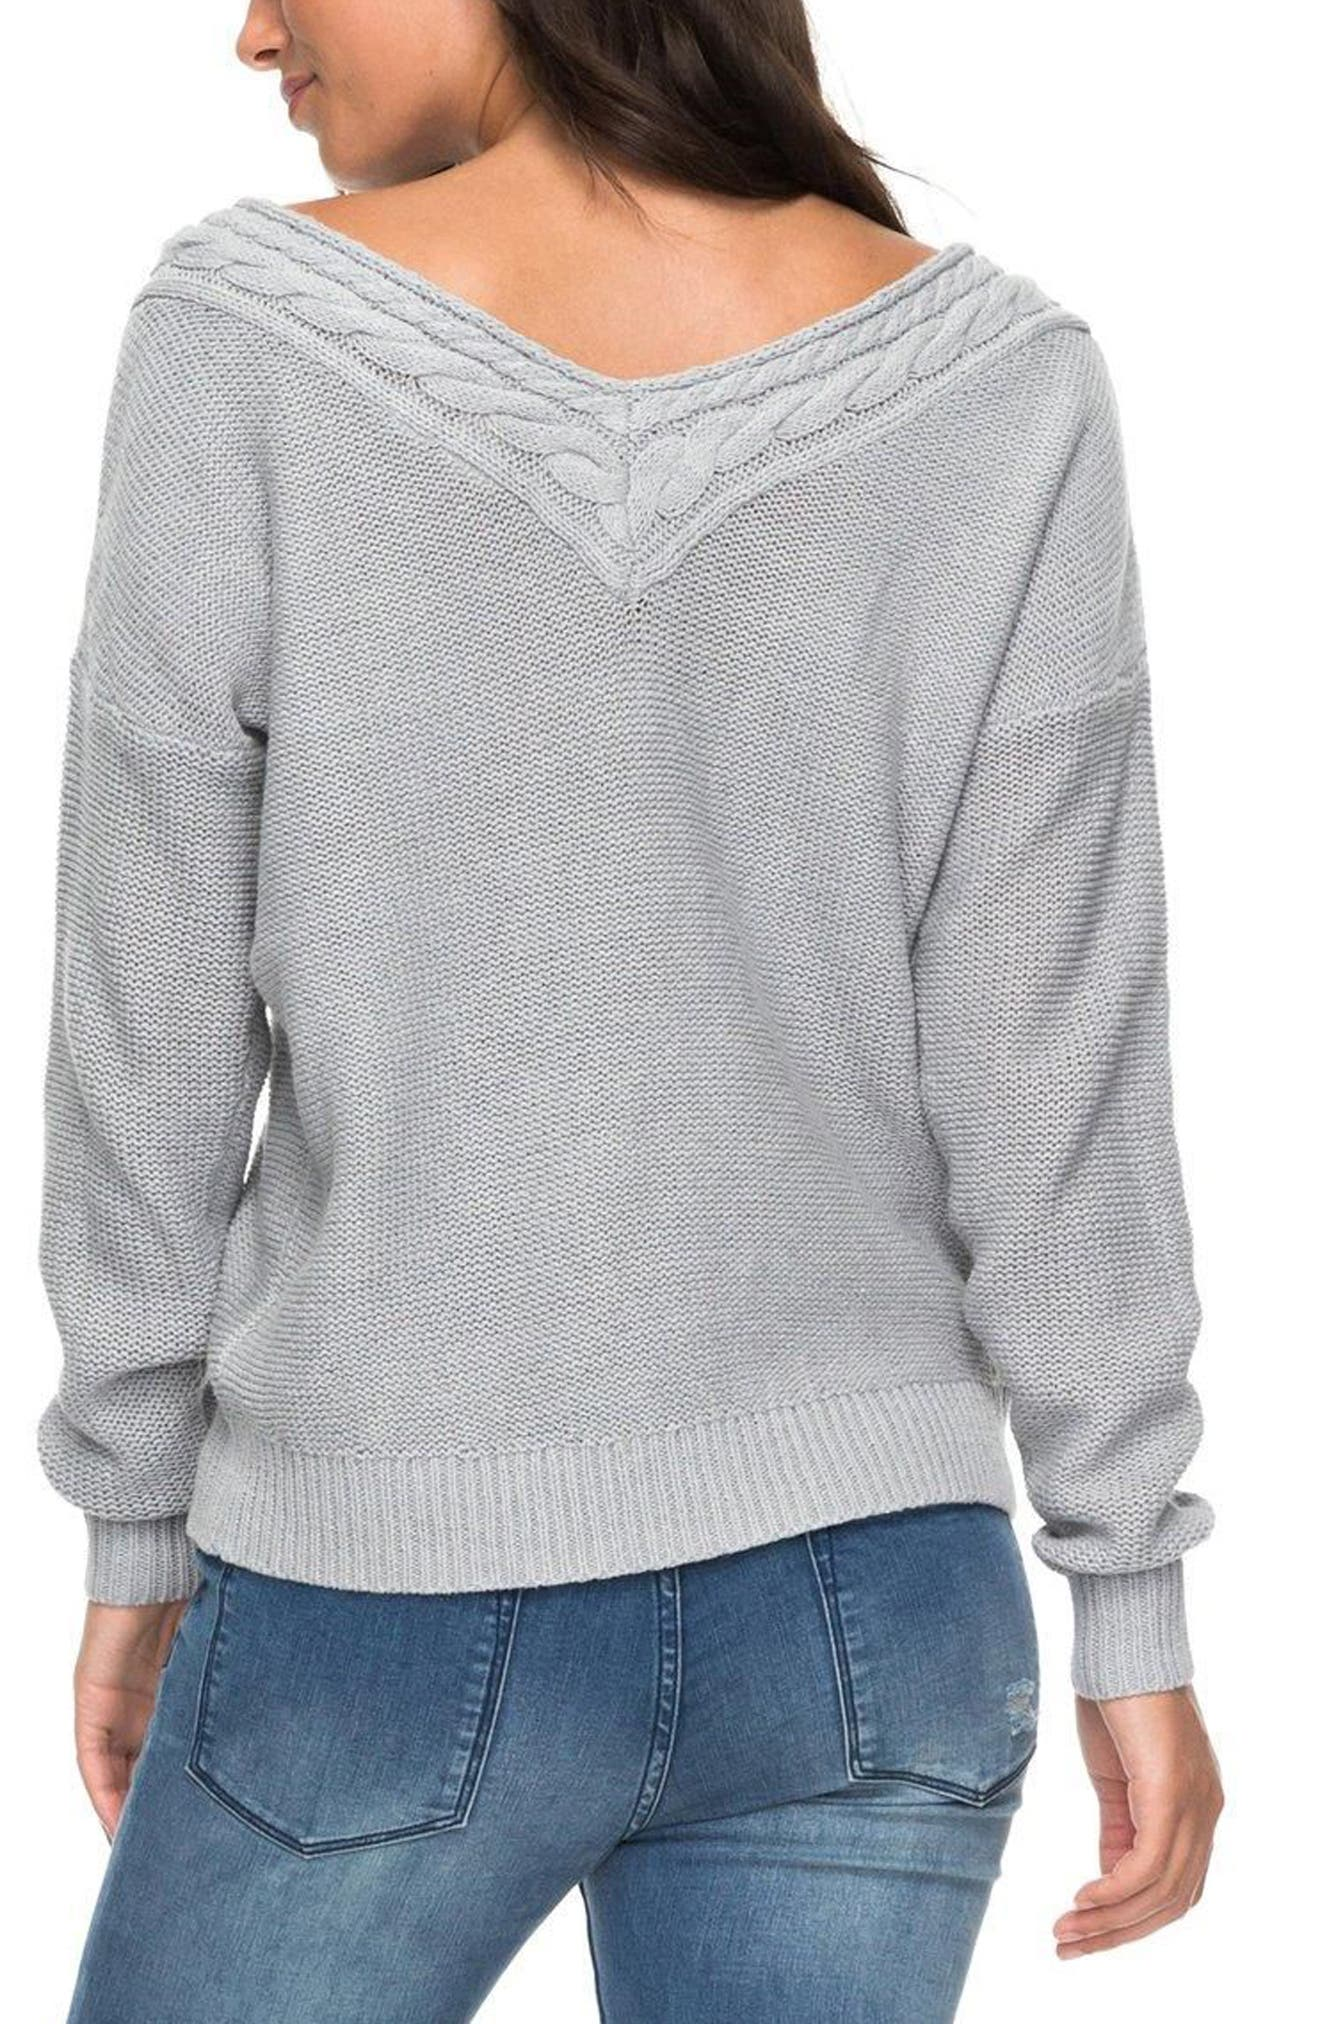 Choose to Shine Sweater,                             Alternate thumbnail 3, color,                             Heritage Heather